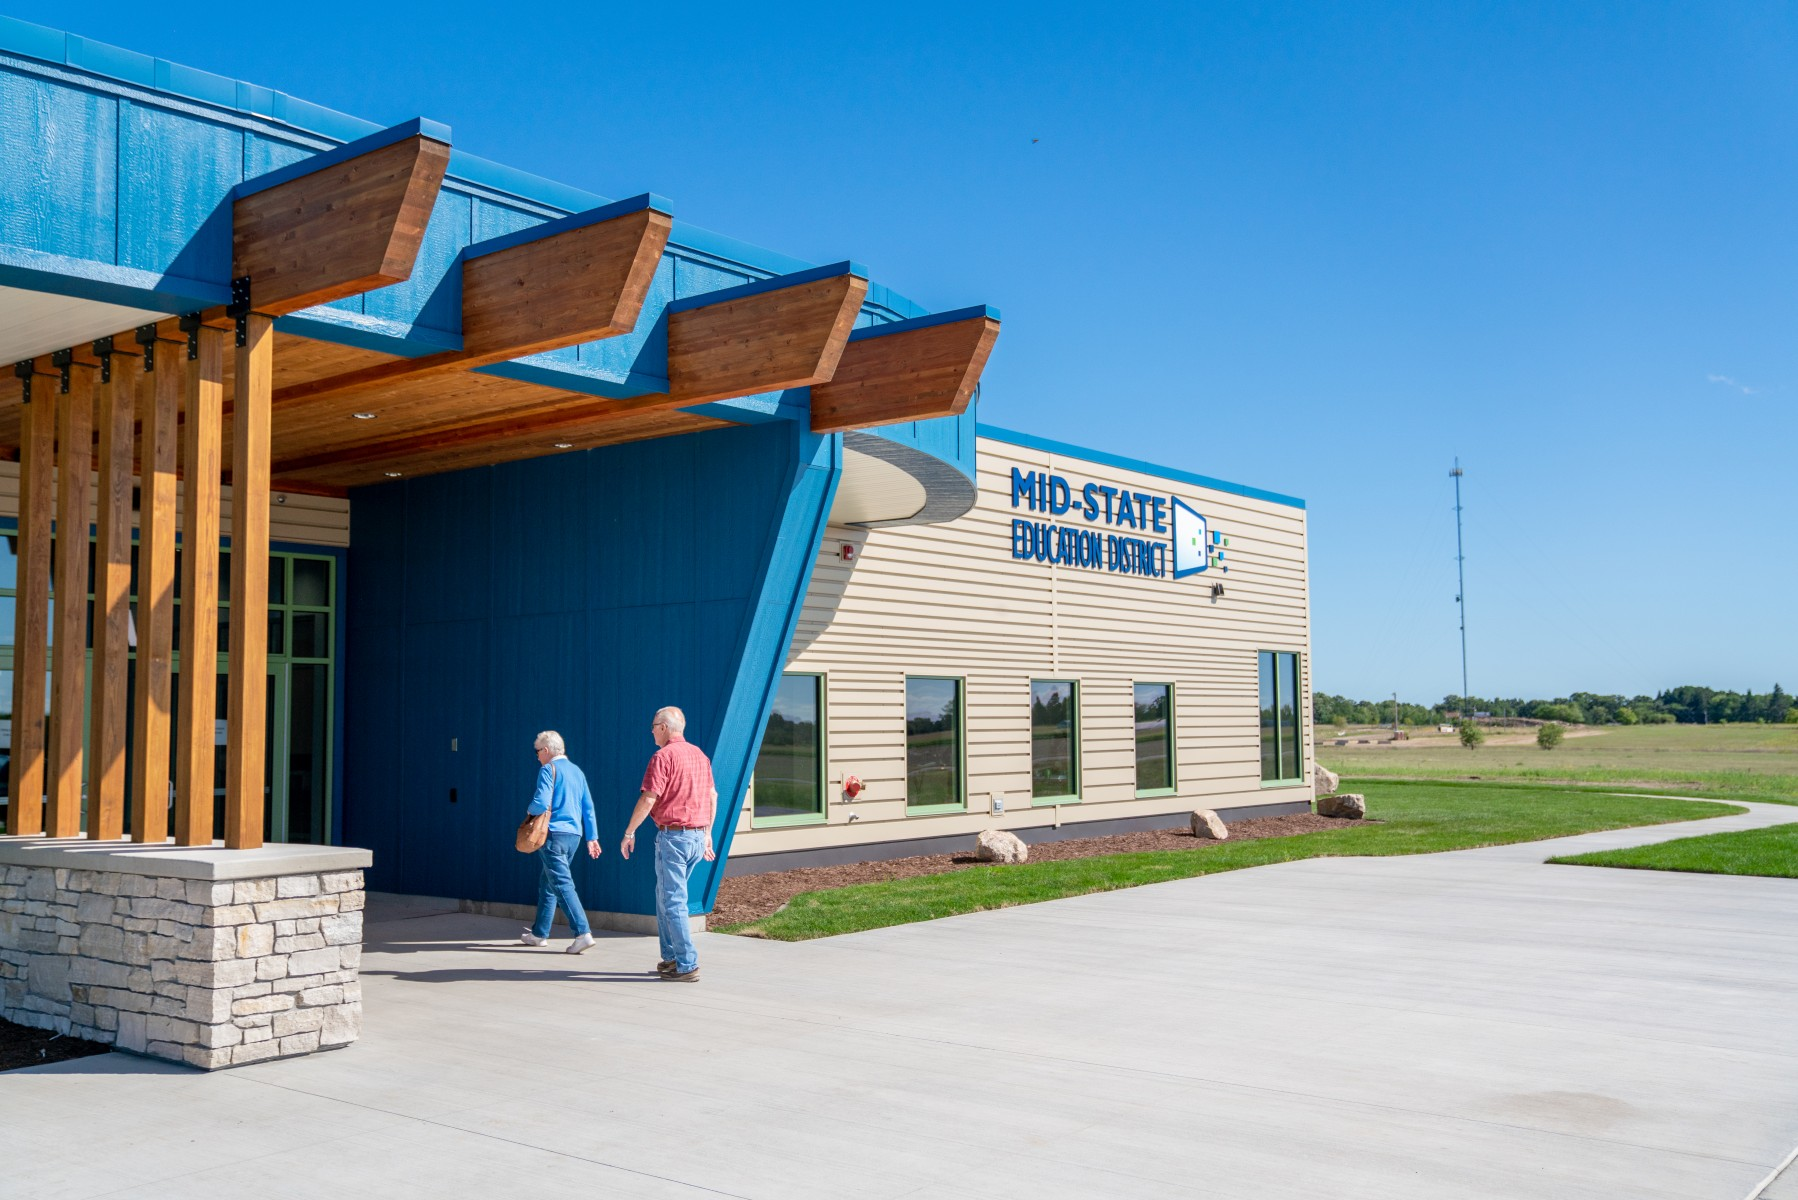 Mid-State Education District opened its Setting IV facility to students in September 2019. Within five years, this will be one of four such facilities funded by Sourcewell.